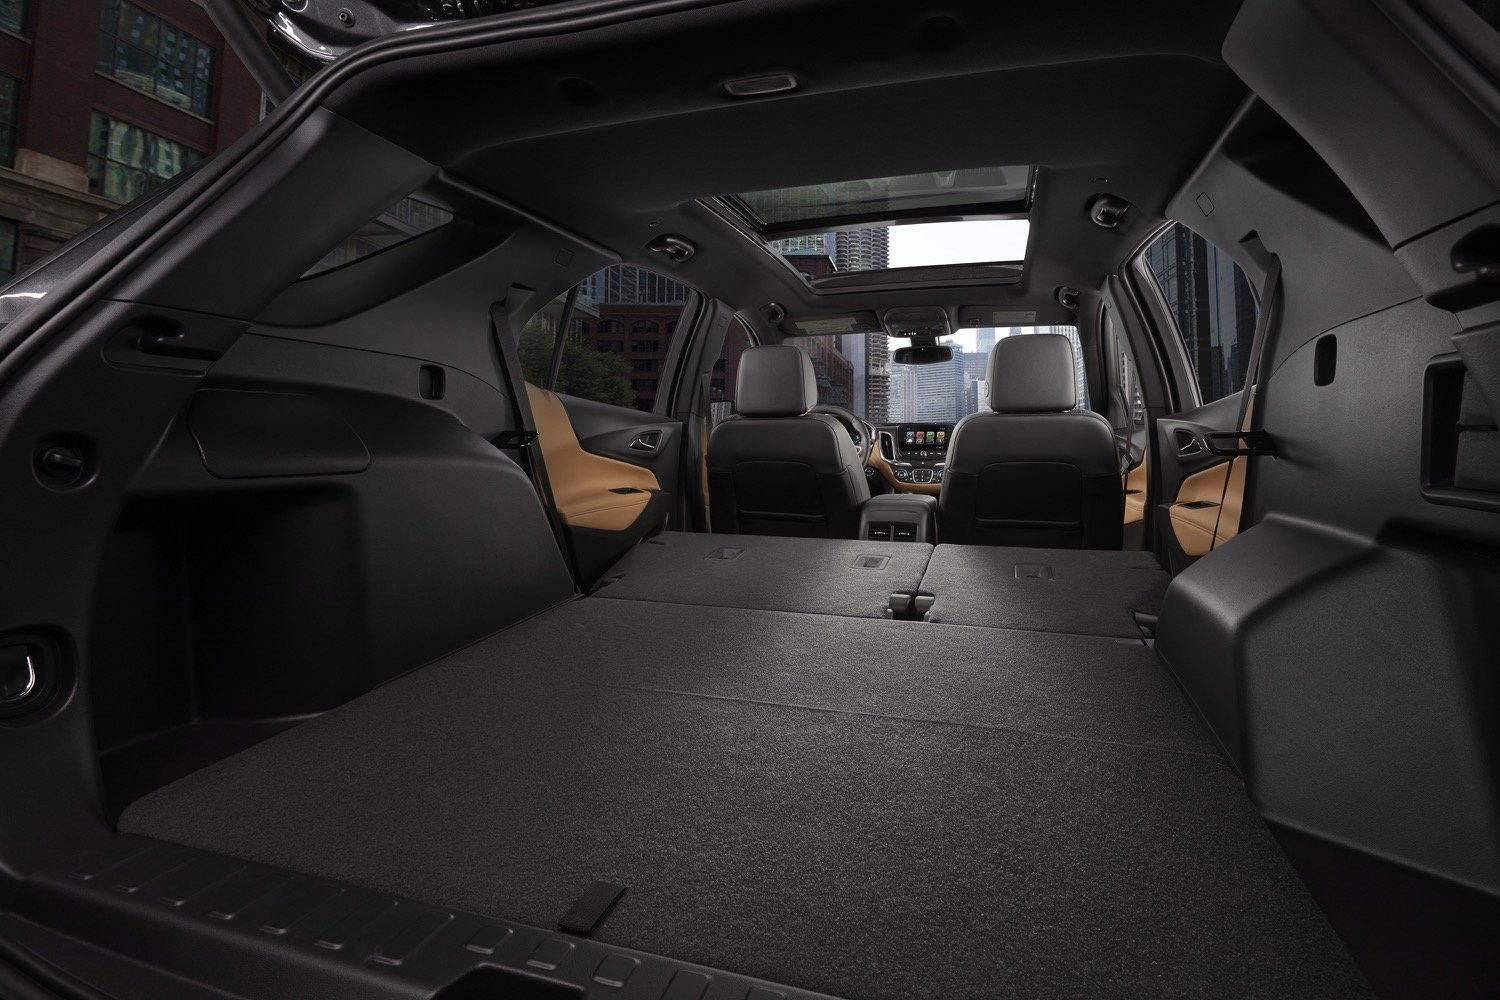 2019 Chevrolet Equinox Lt Interior